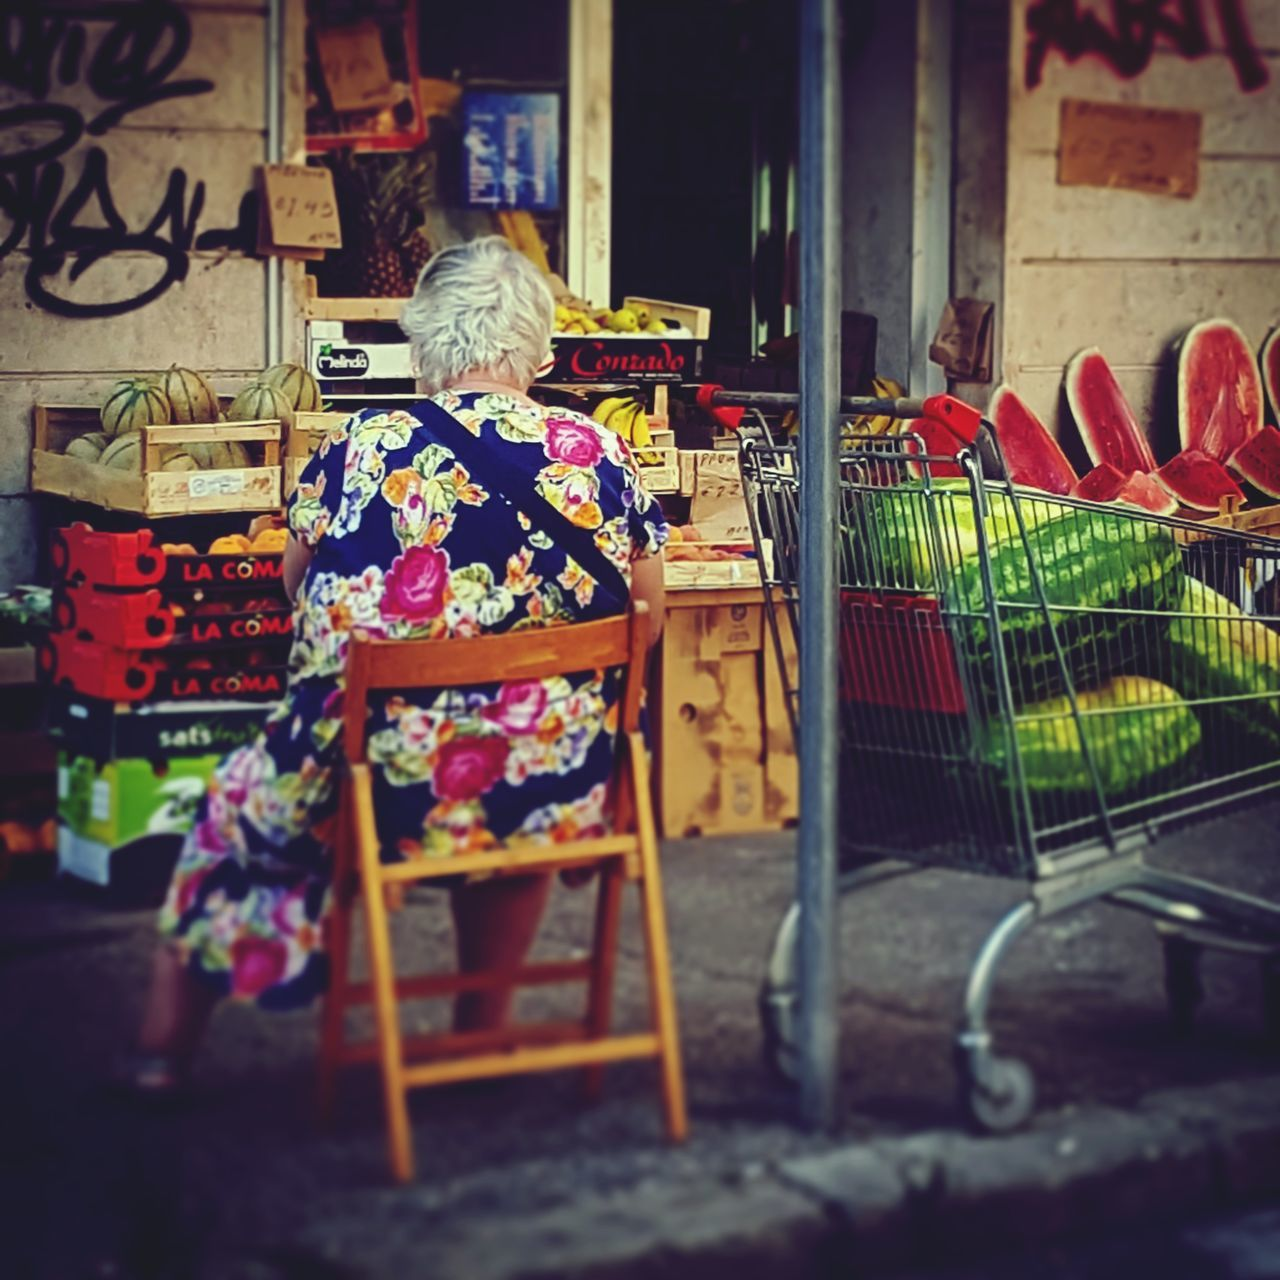 retail, choice, for sale, market, large group of objects, variation, market stall, seat, business, day, store, real people, shopping, chair, abundance, small business, multi colored, sale, retail display, selective focus